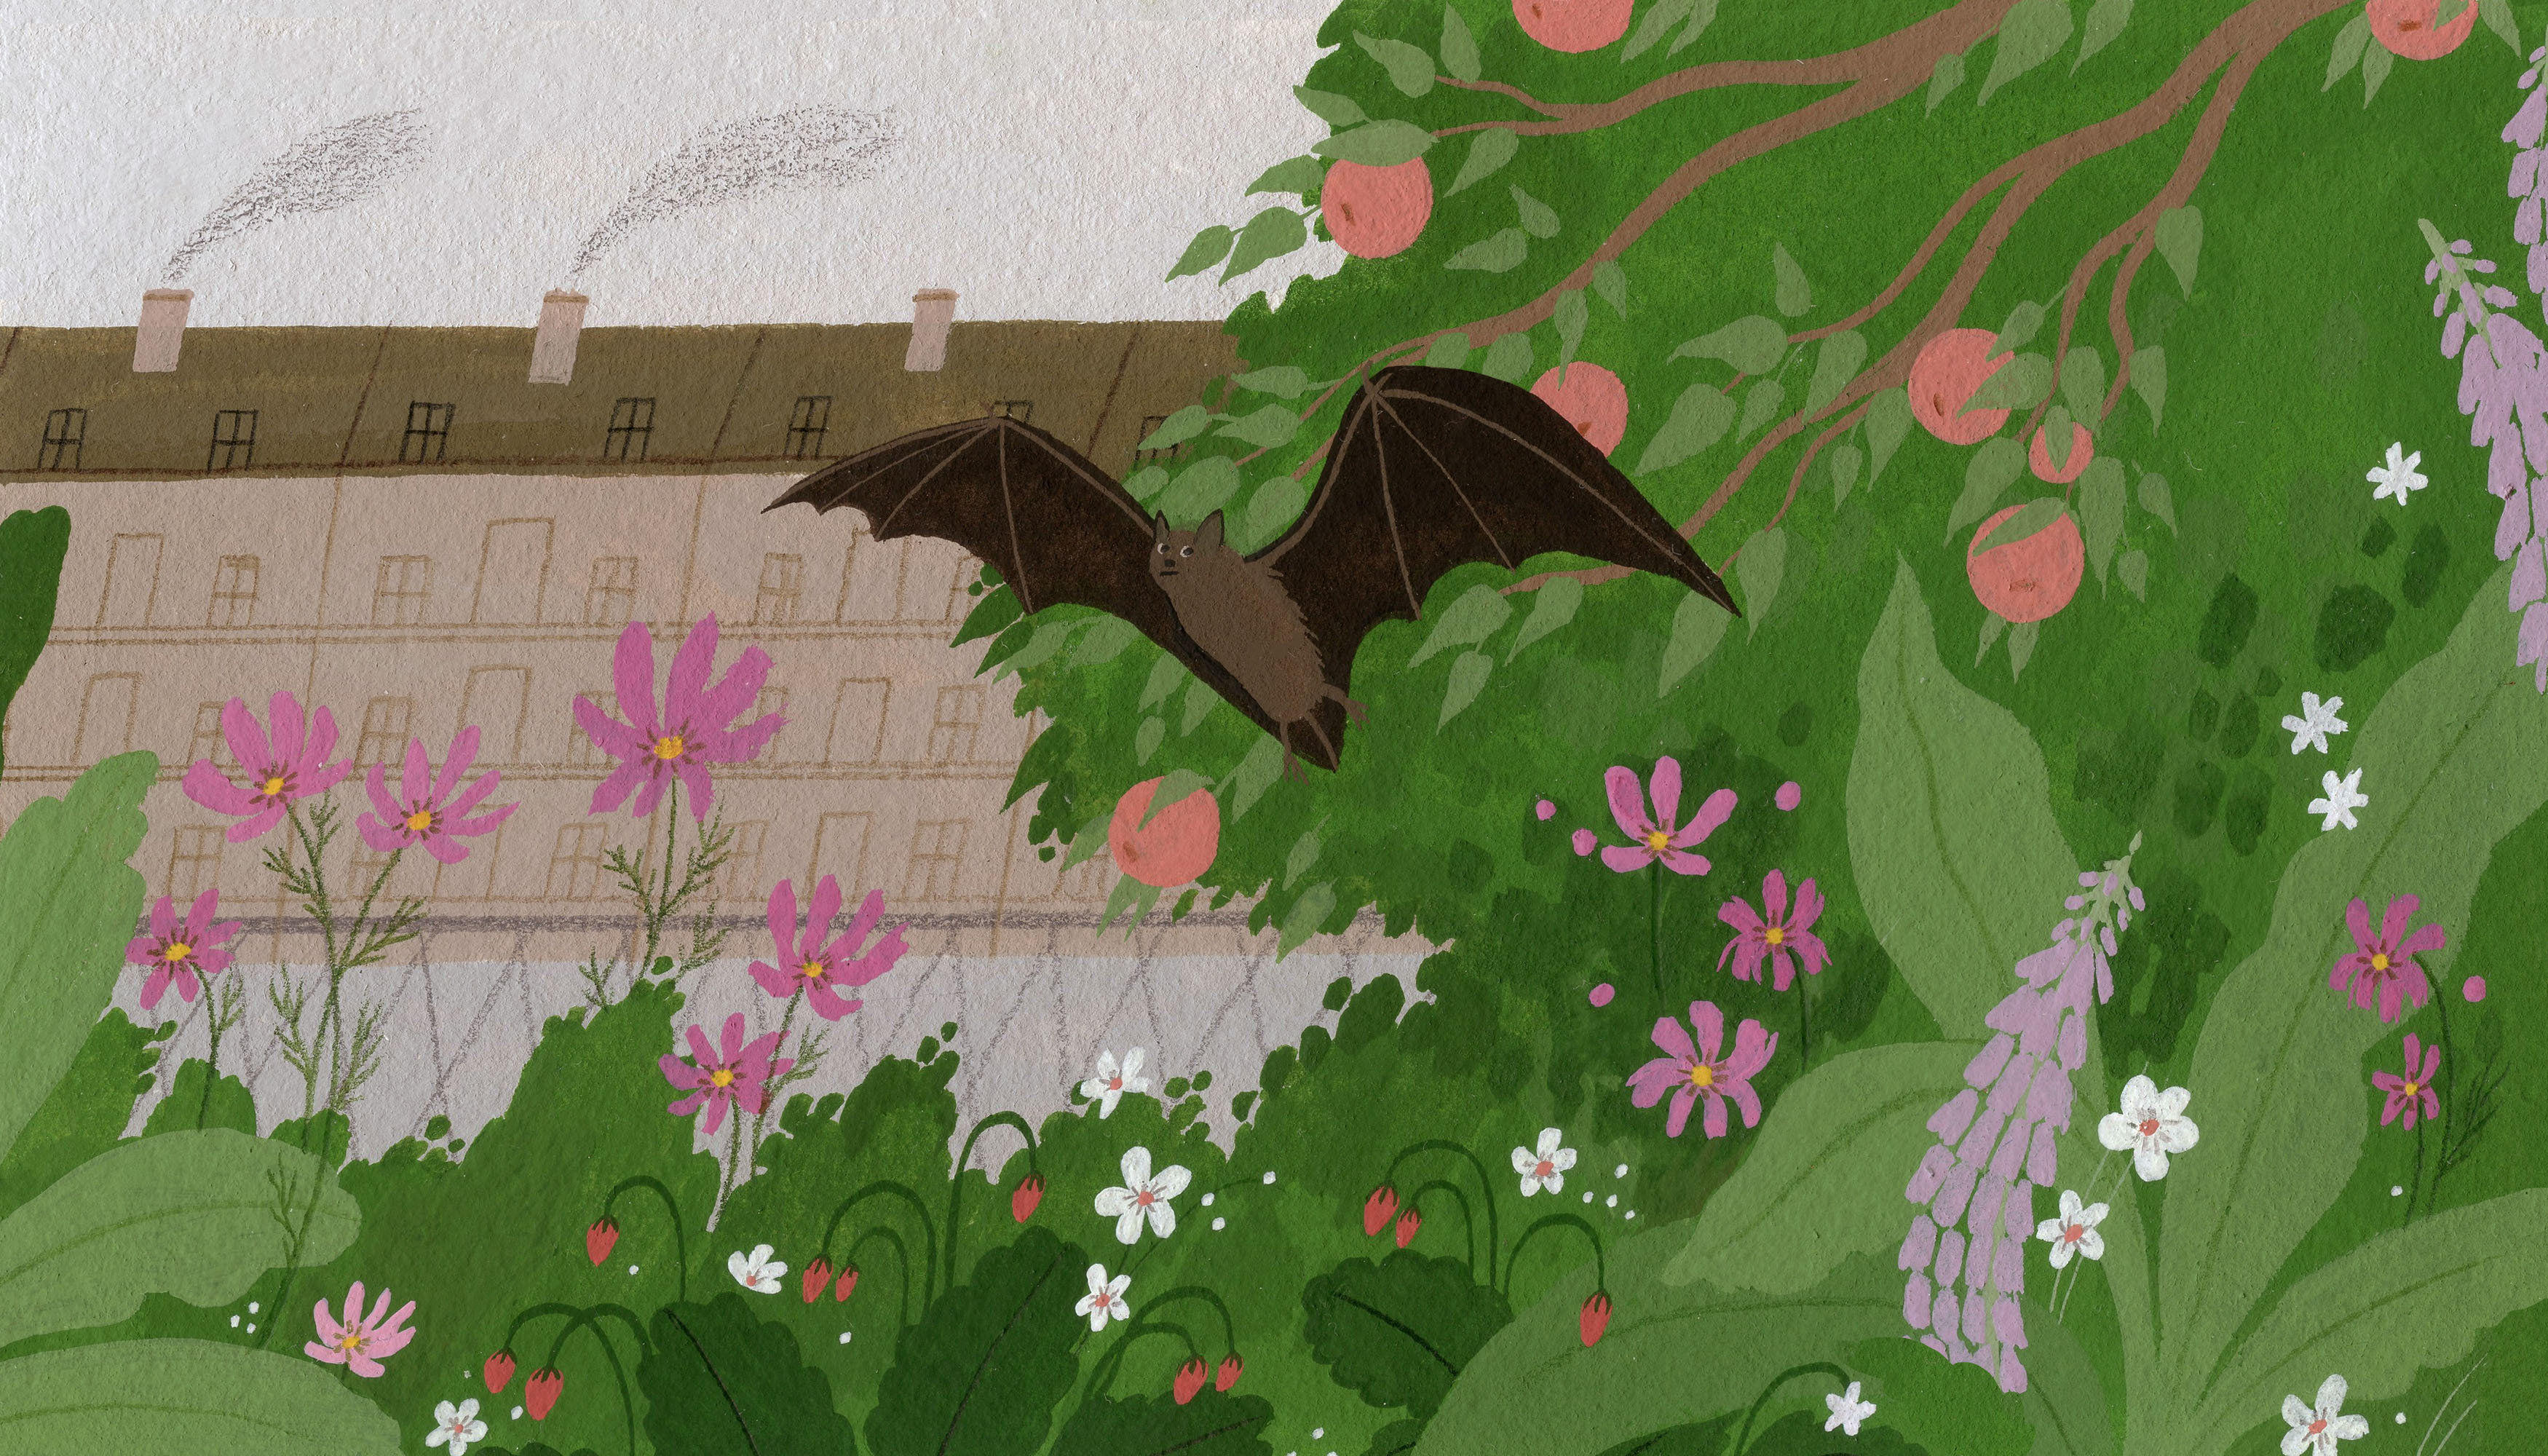 A bat flies through a lush garden with blooming pink and white flowers and lilac. In the background there is a chainlink fence and a gloomy-looking building emitting smog. Illustration.